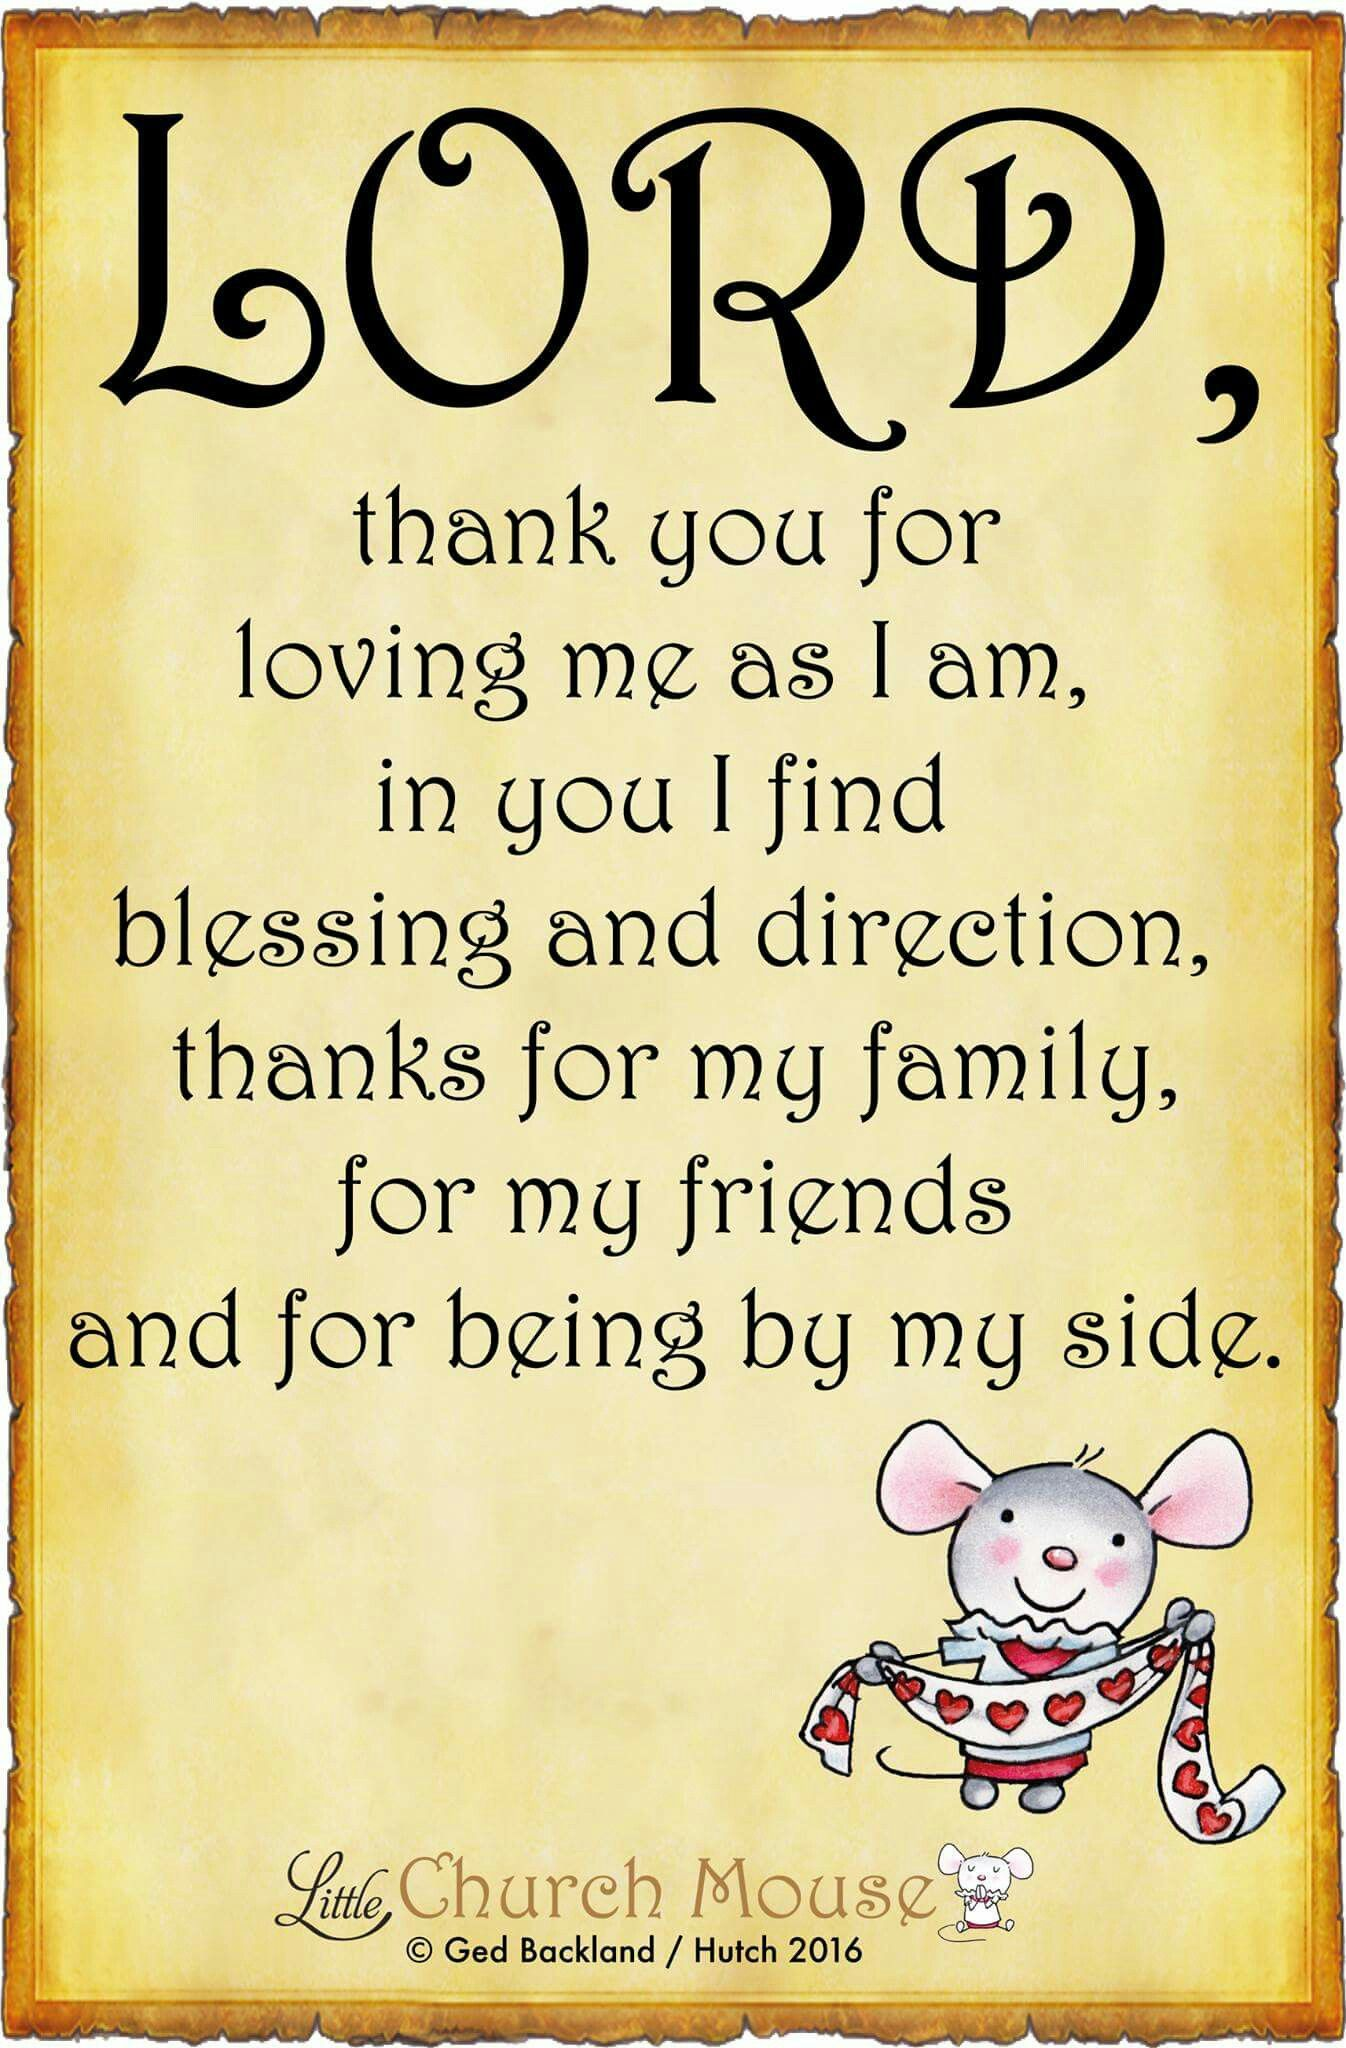 Lord, thank you for loving me as I am, in you I find